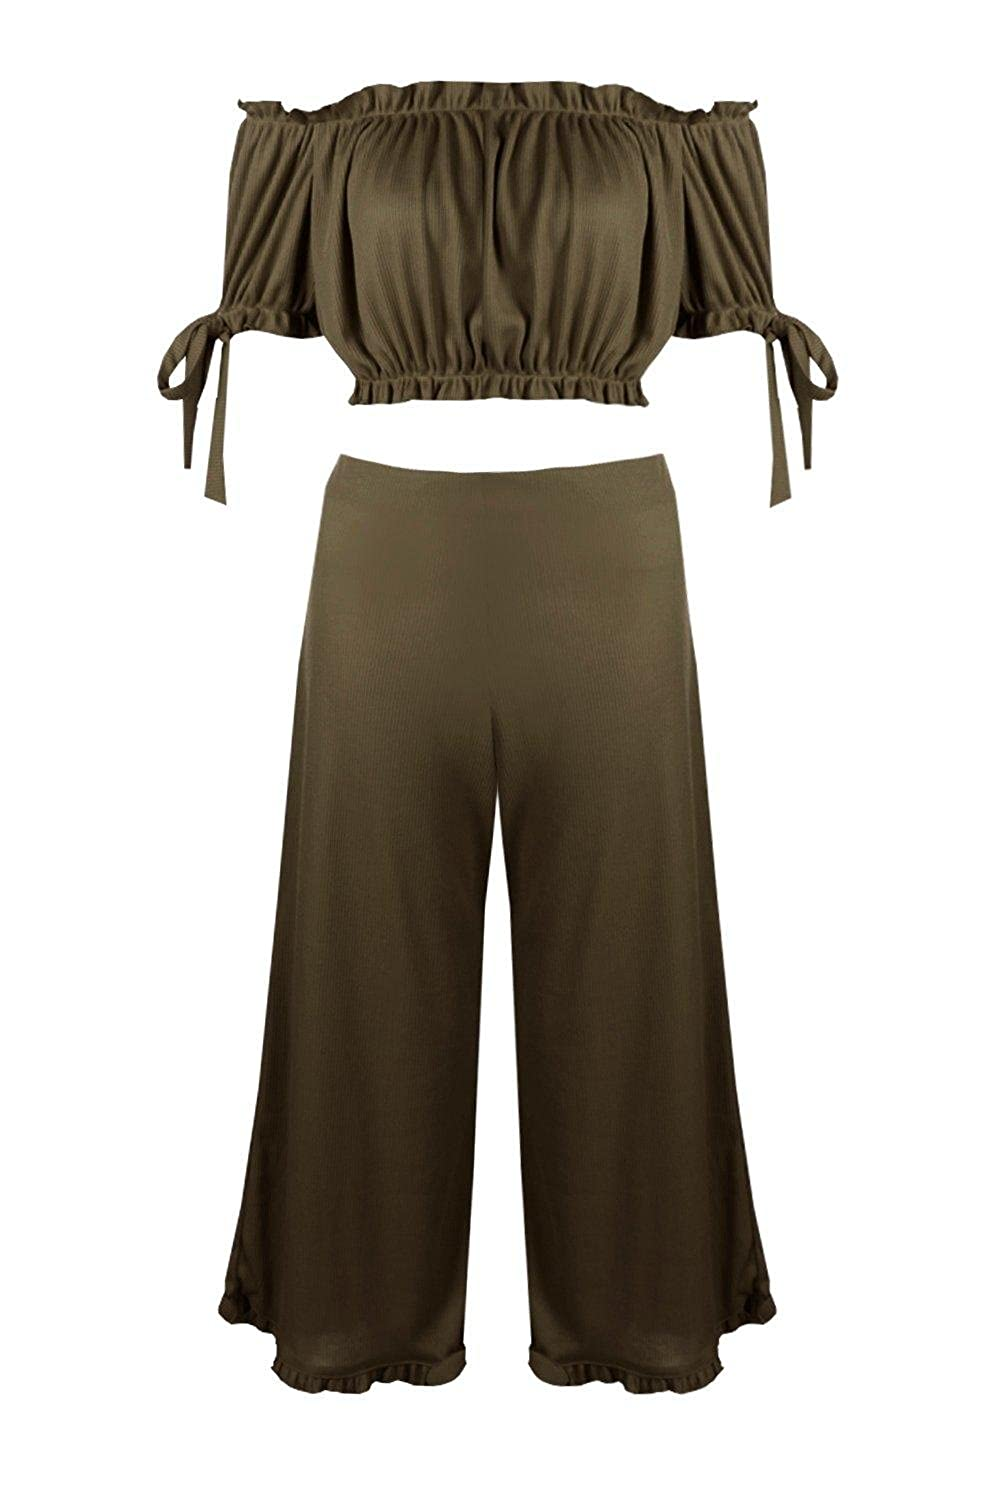 f6dcad71560 Boohoo Womens Lola Off Shoulder Crop & Frill Culotte Co-Ord Set in Khaki  size 2 at Amazon Women's Clothing store: